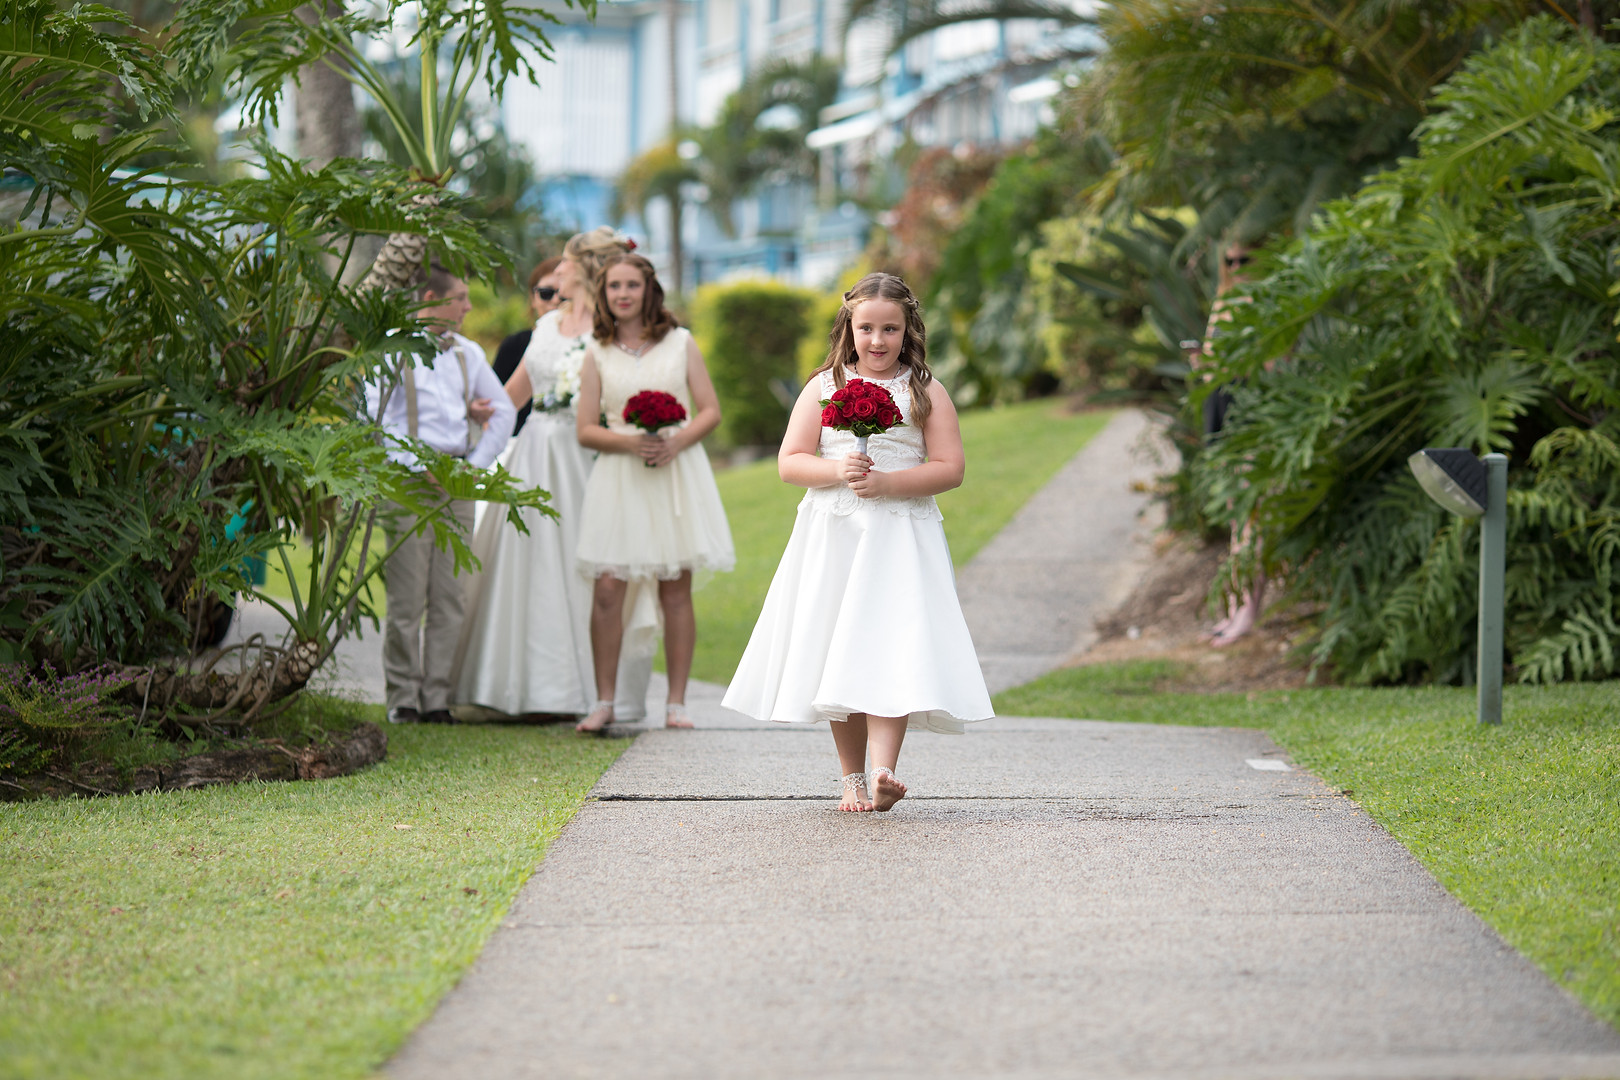 Brisbane Cherry Photography wedding